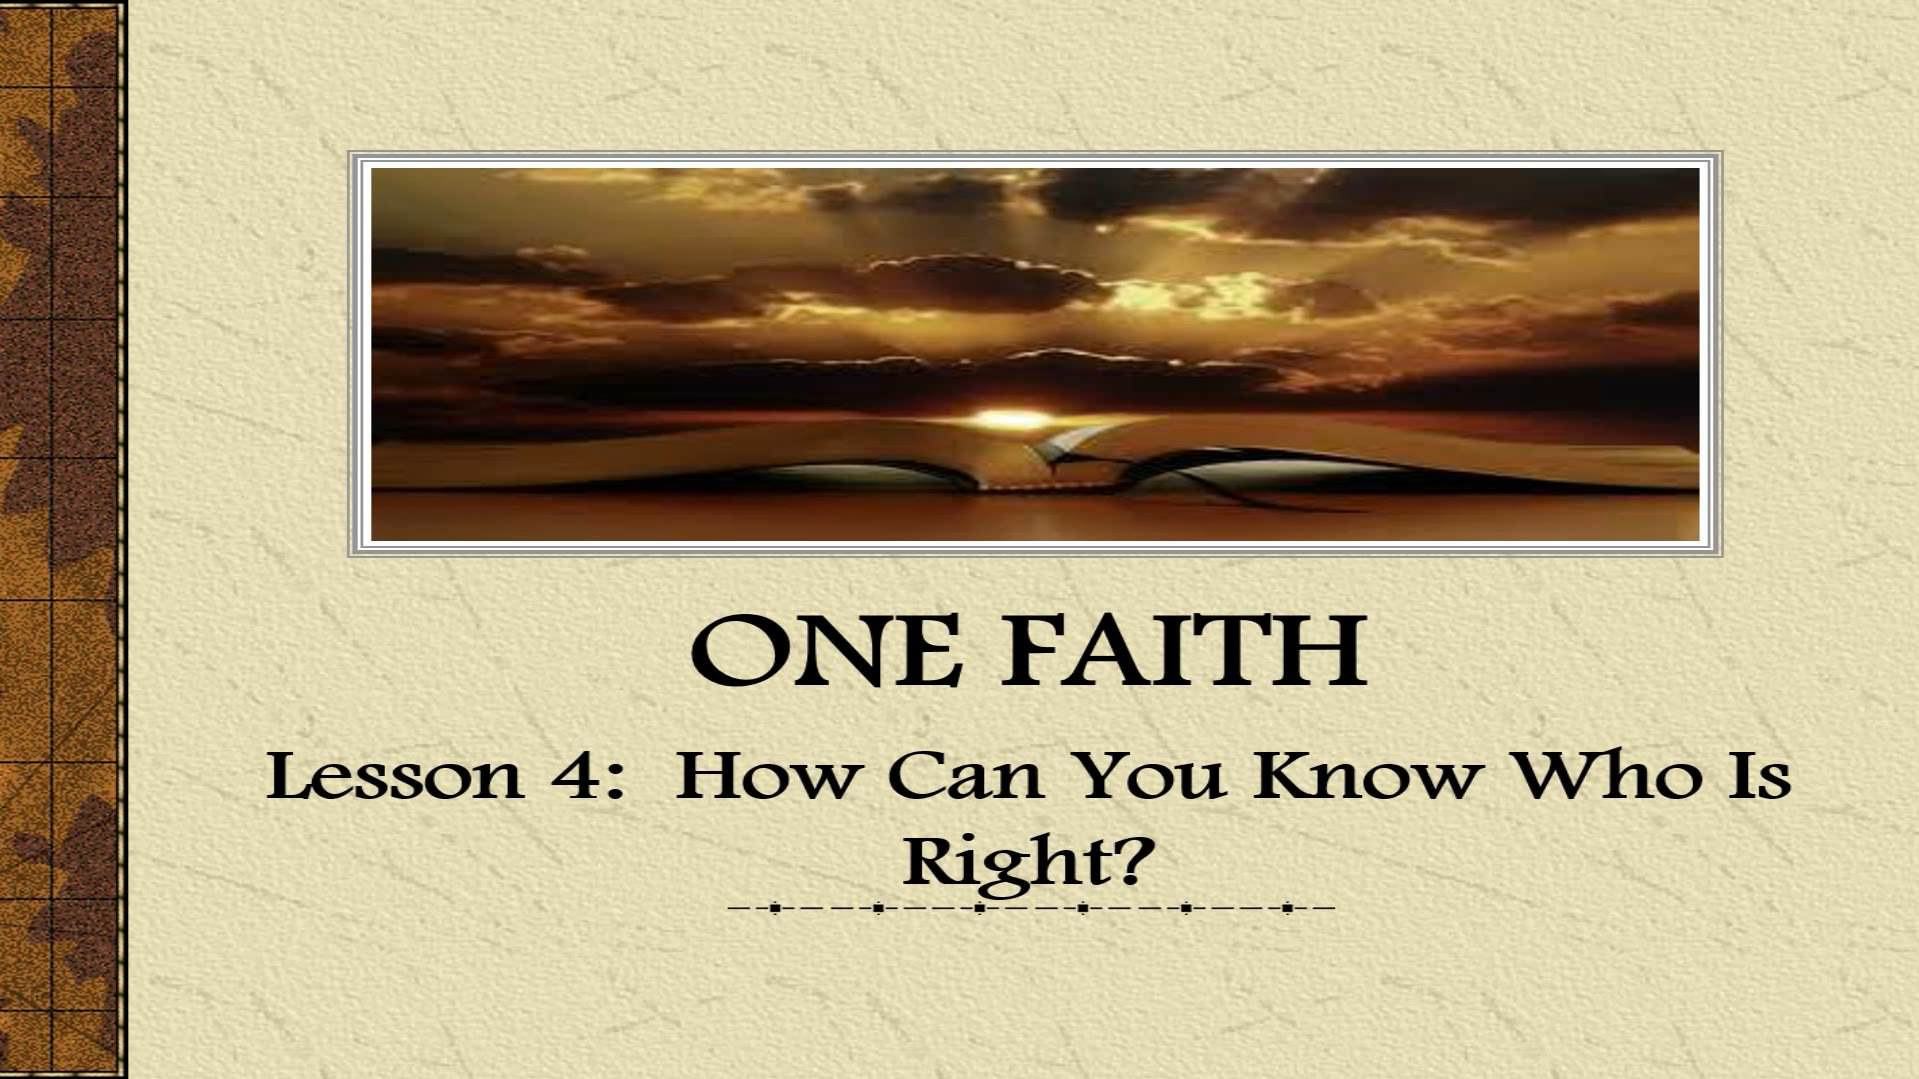 One Faith (Lesson 4:  How Can You Know Who Is Right?)